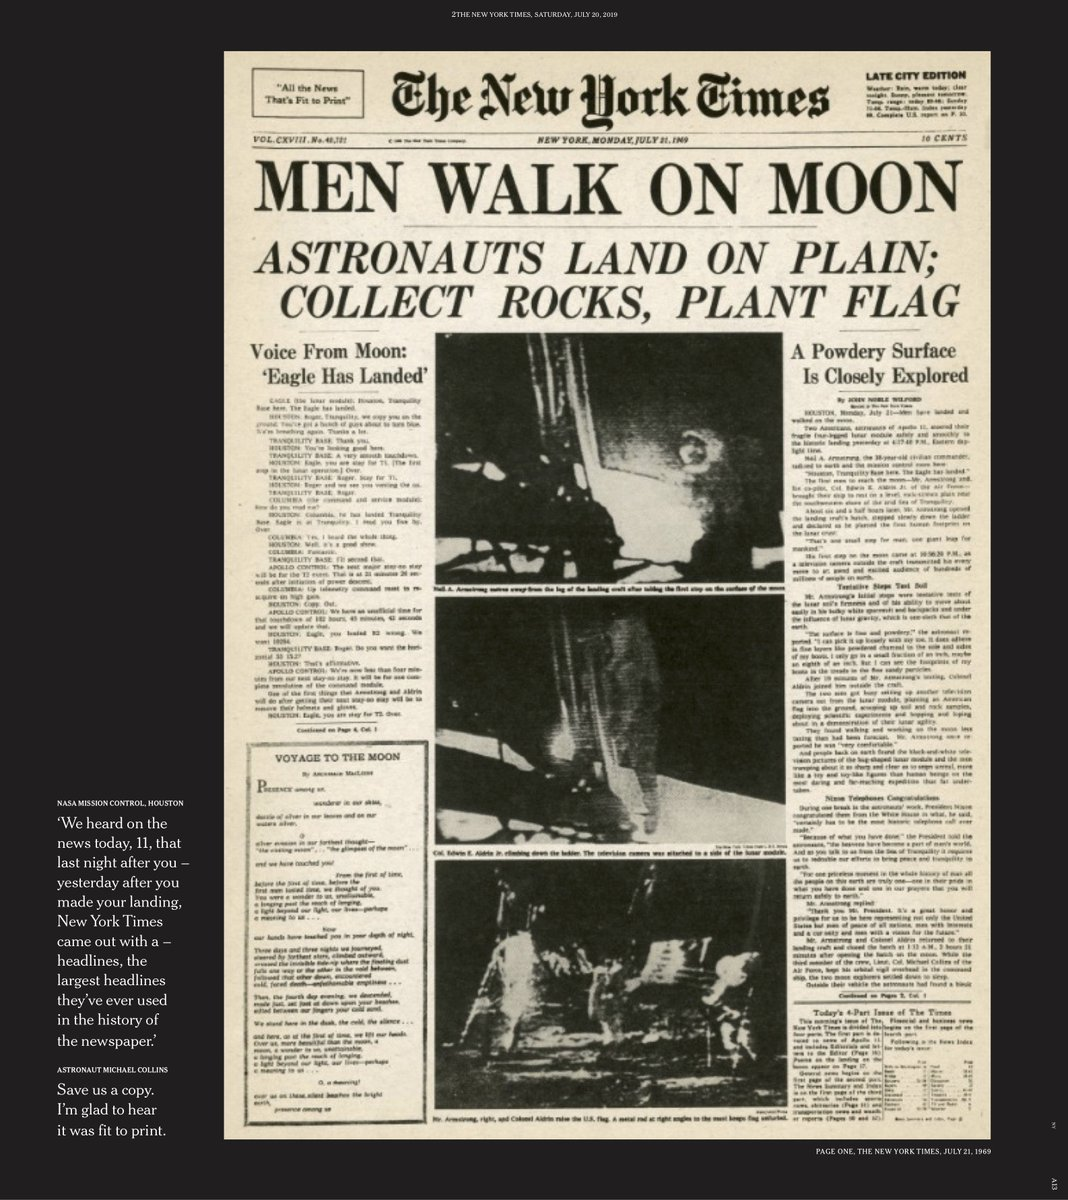 """Here's what the front page of The New York Times looked like 50 years ago today, the morning after the Apollo 11 moon landing. The headline """"Men Walk on Moon"""" was set in some of the largest type ever used in The Times.  Read the story behind the story: https://nyti.ms/32GwDYX"""